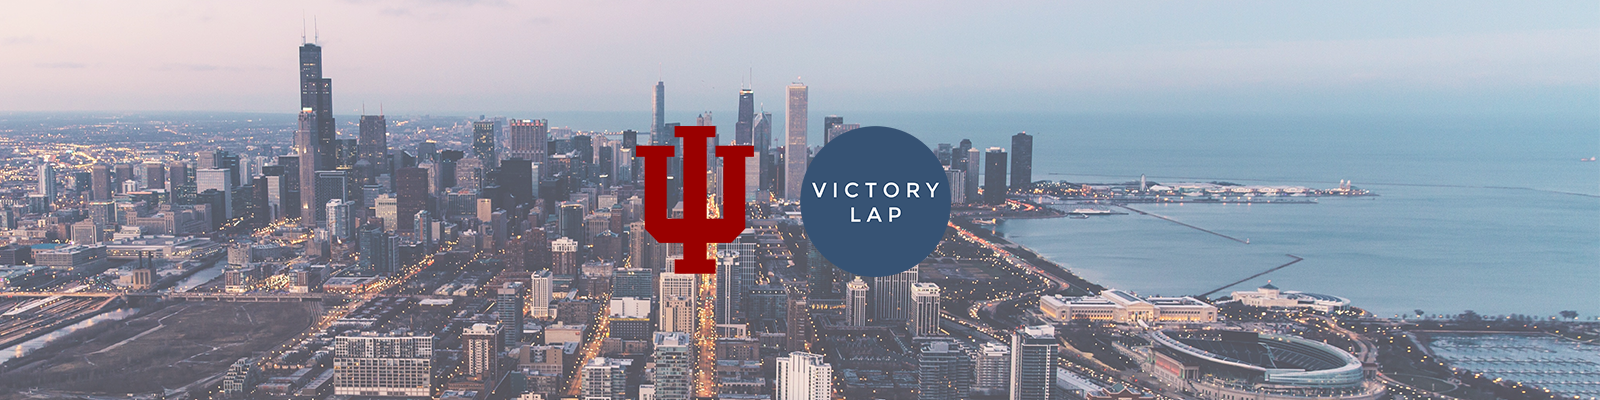 indiana university and victory lap